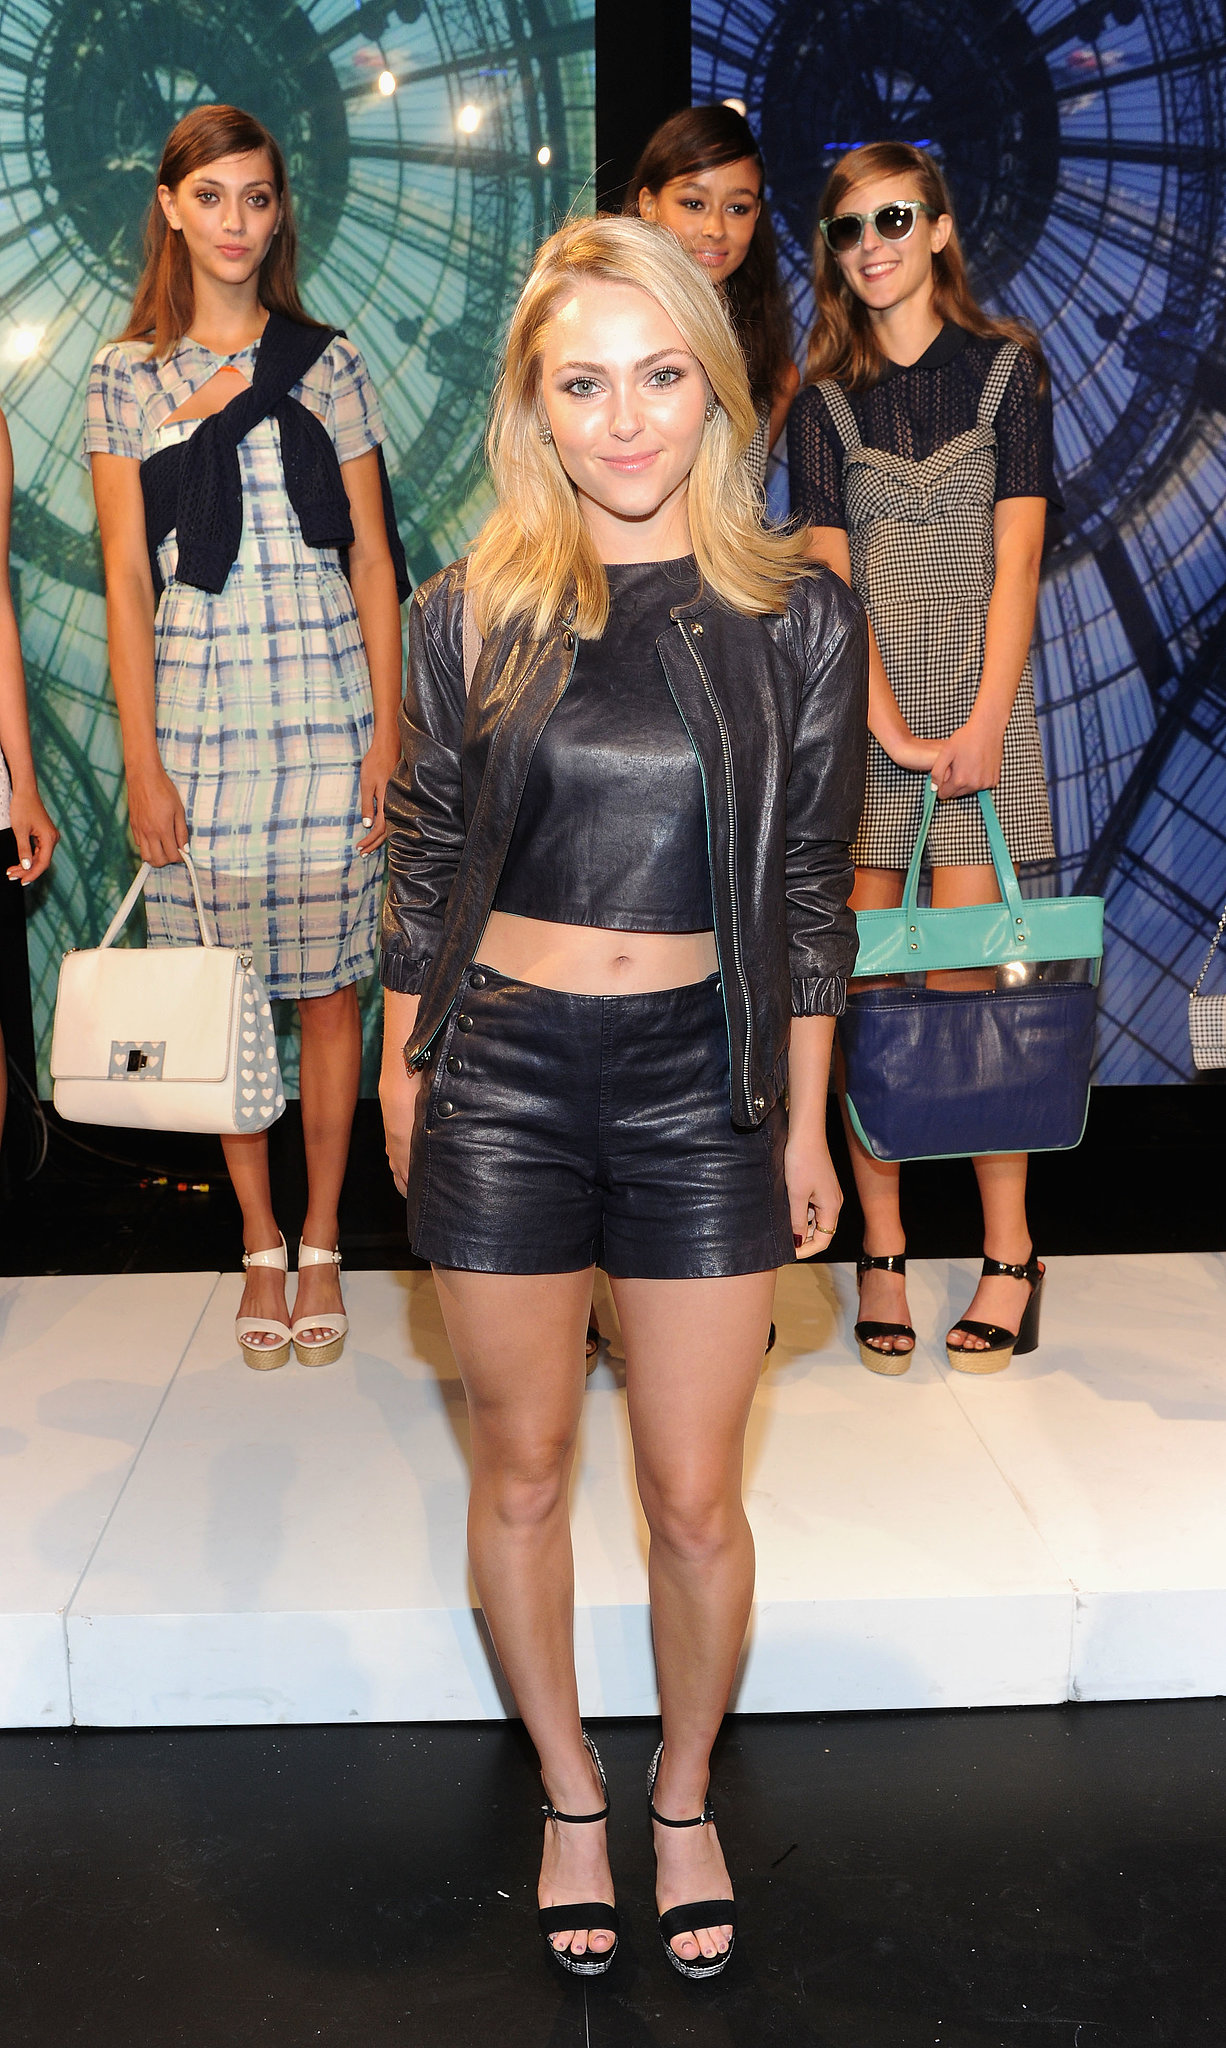 AnnaSophia Robb showed off her midriff in a leather ensemble at Charlotte Ronson's presentation, then finished with Jean-Michel Cazabat sandals.